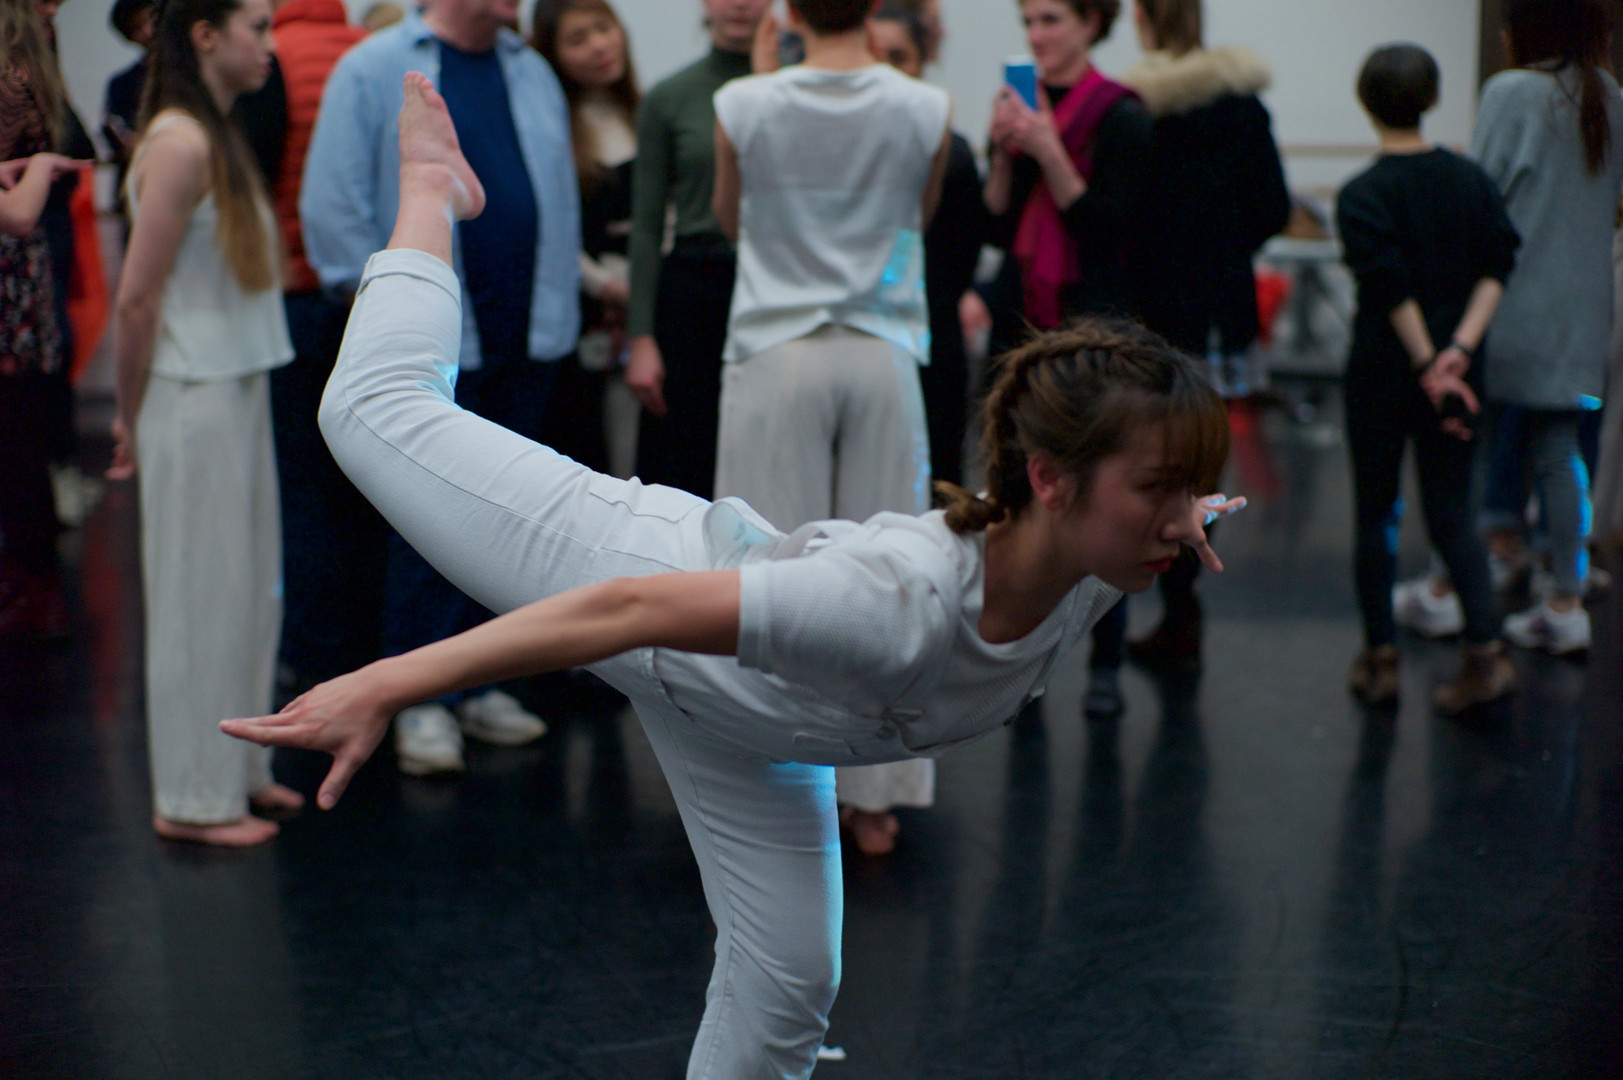 Meniscus by Ghost and John at Rambert, London